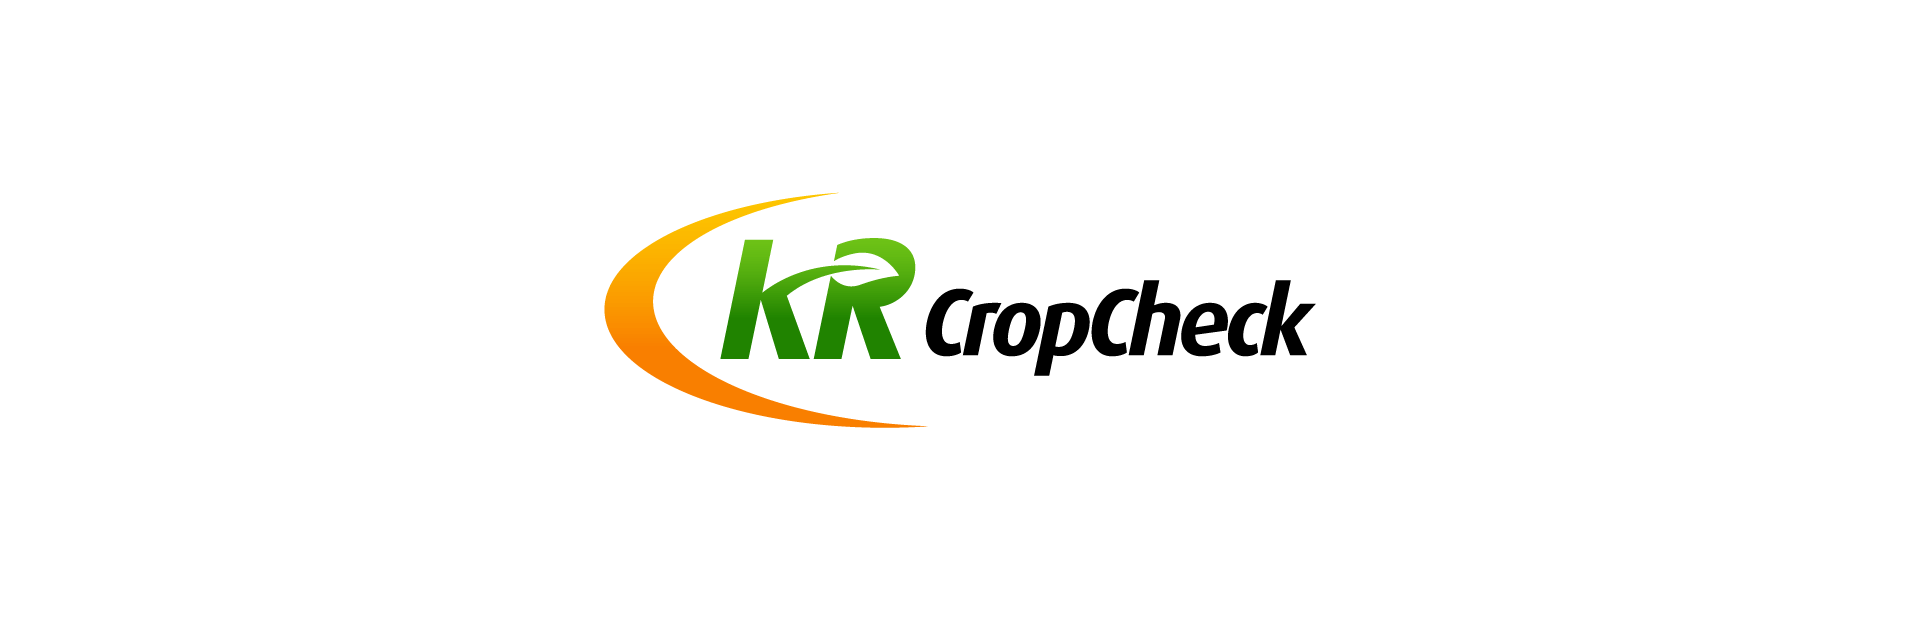 KR CropCheck logo - full colour